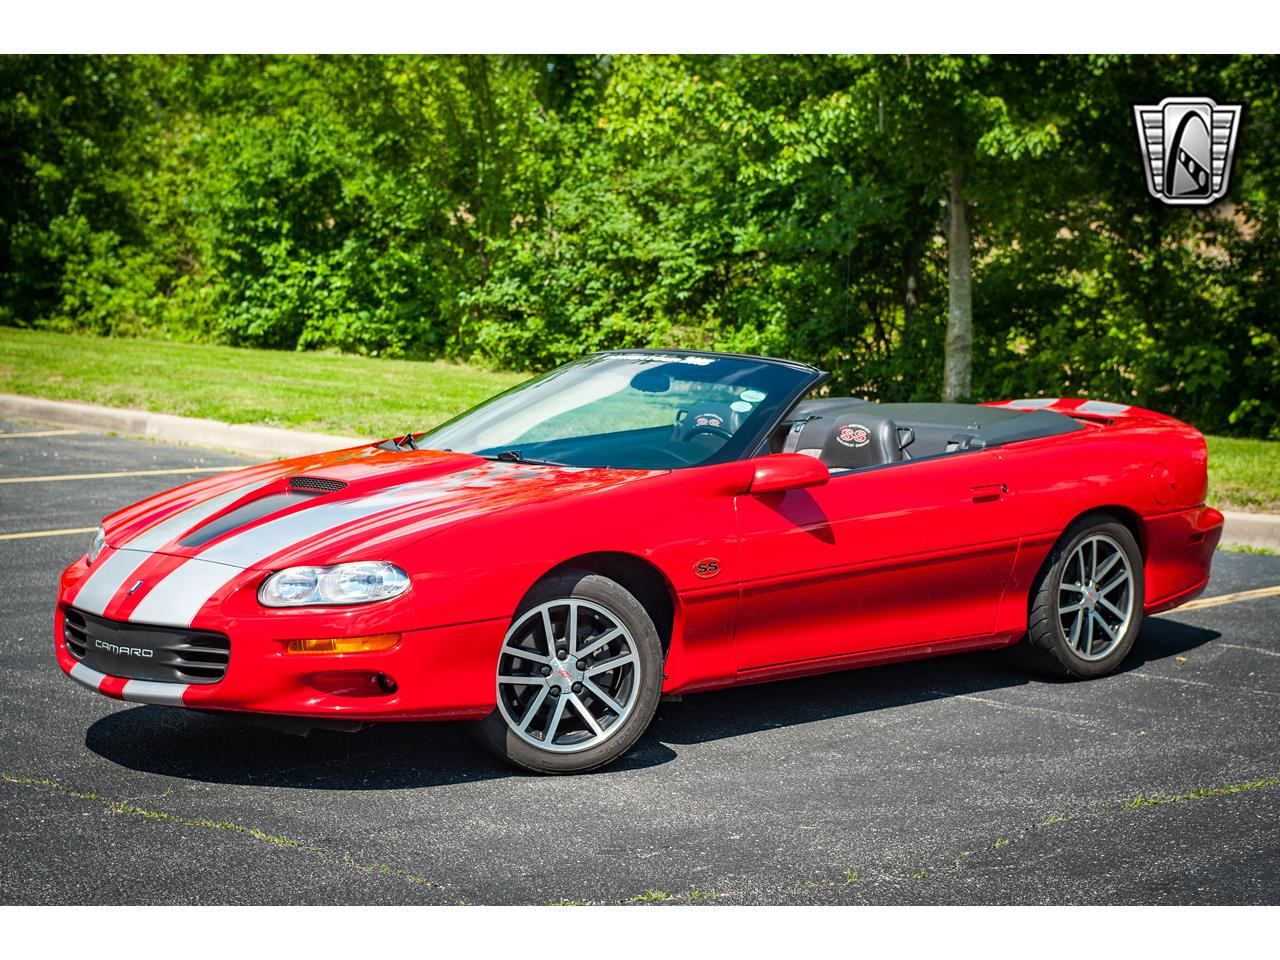 Large Picture of 2002 Chevrolet Camaro - $33,500.00 - QB9Z